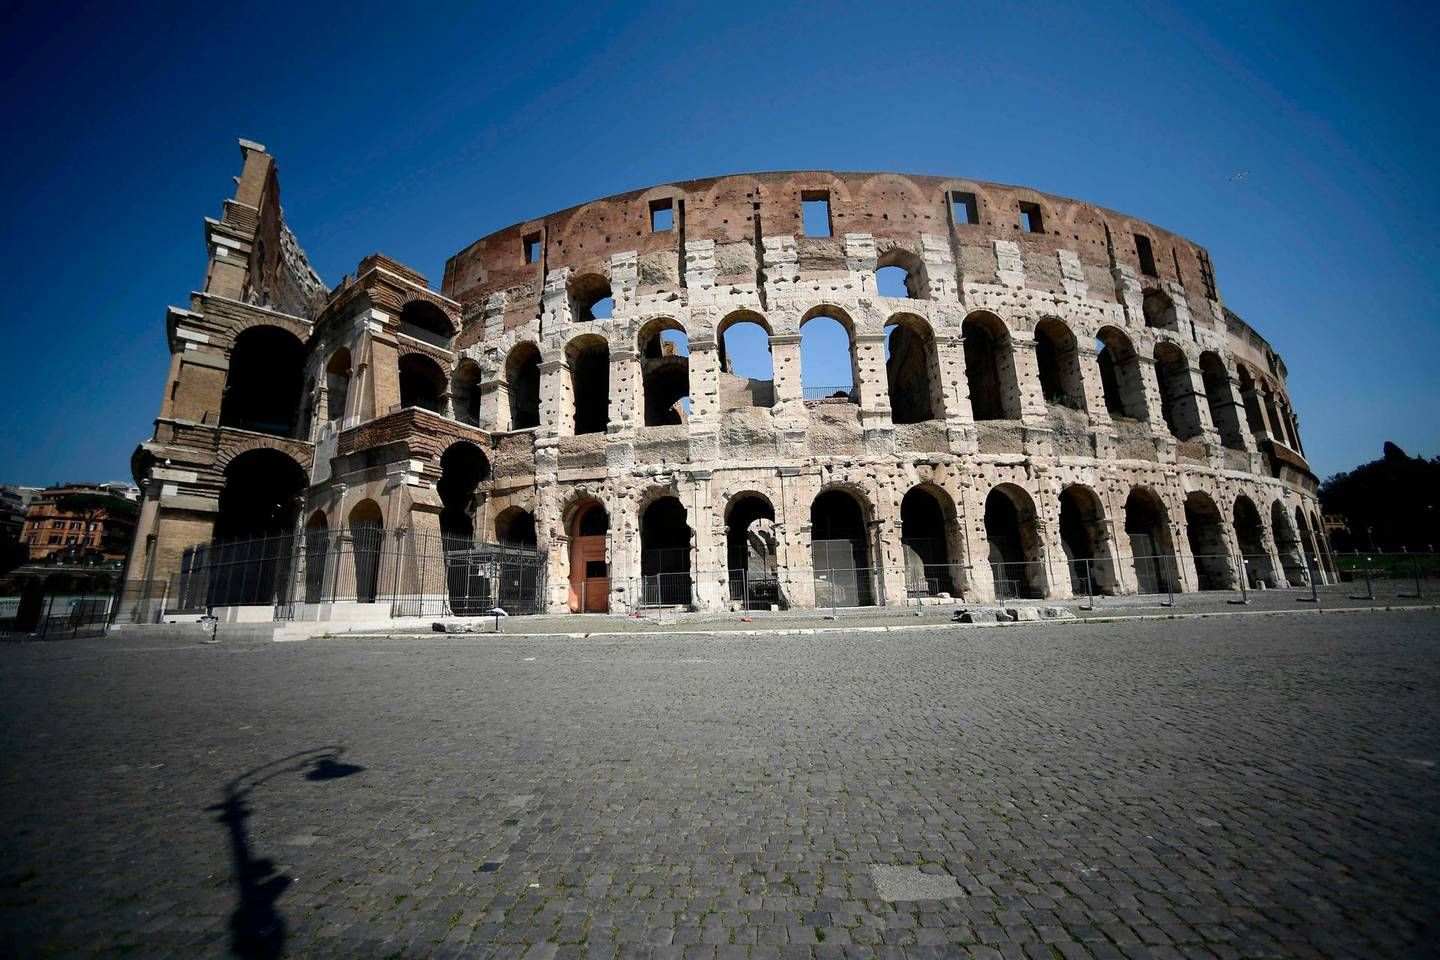 A general view shows a deserted area by the Coliseum monument in Rome on April 10, 2020 during the country's lockdown aimed at curbing the spread of the COVID-19 infection, caused by the novel coronavirus.  / AFP / Filippo MONTEFORTE